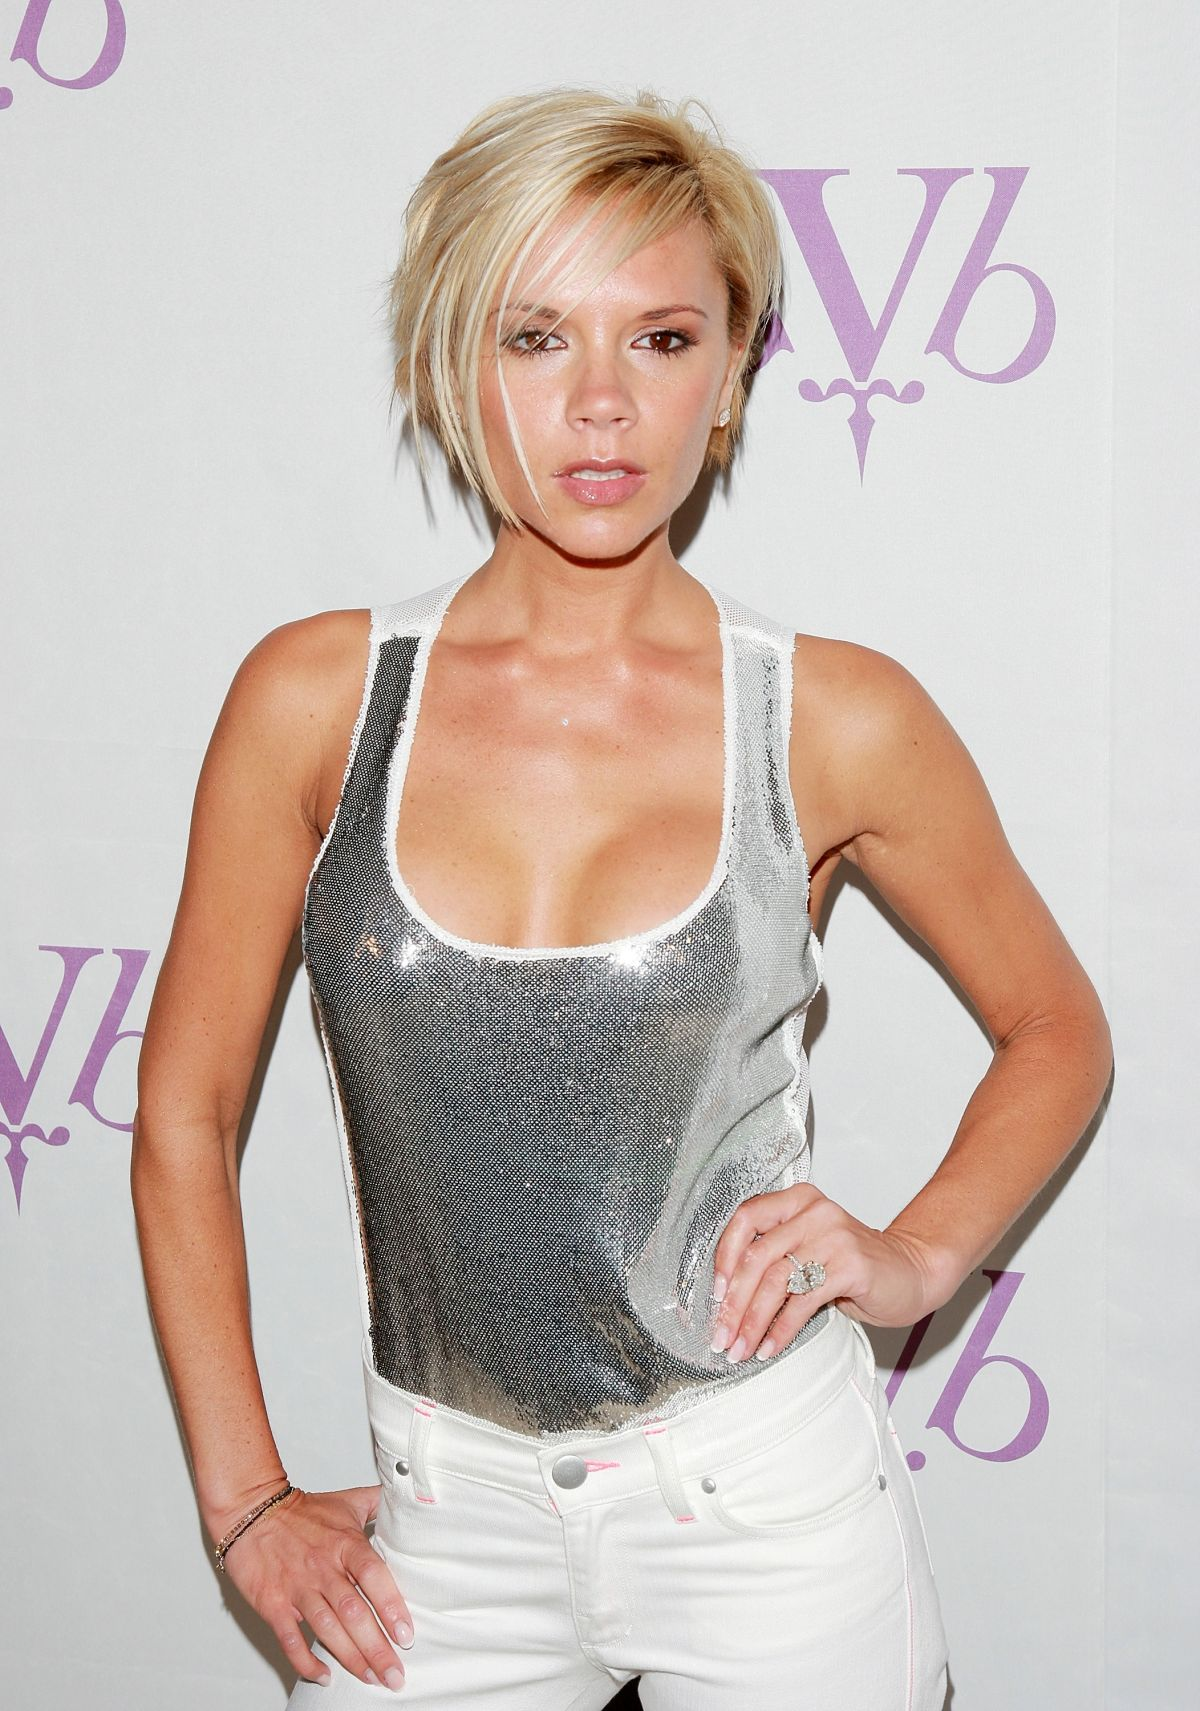 Best From The Past Victoria Beckham At Dvb Jeans